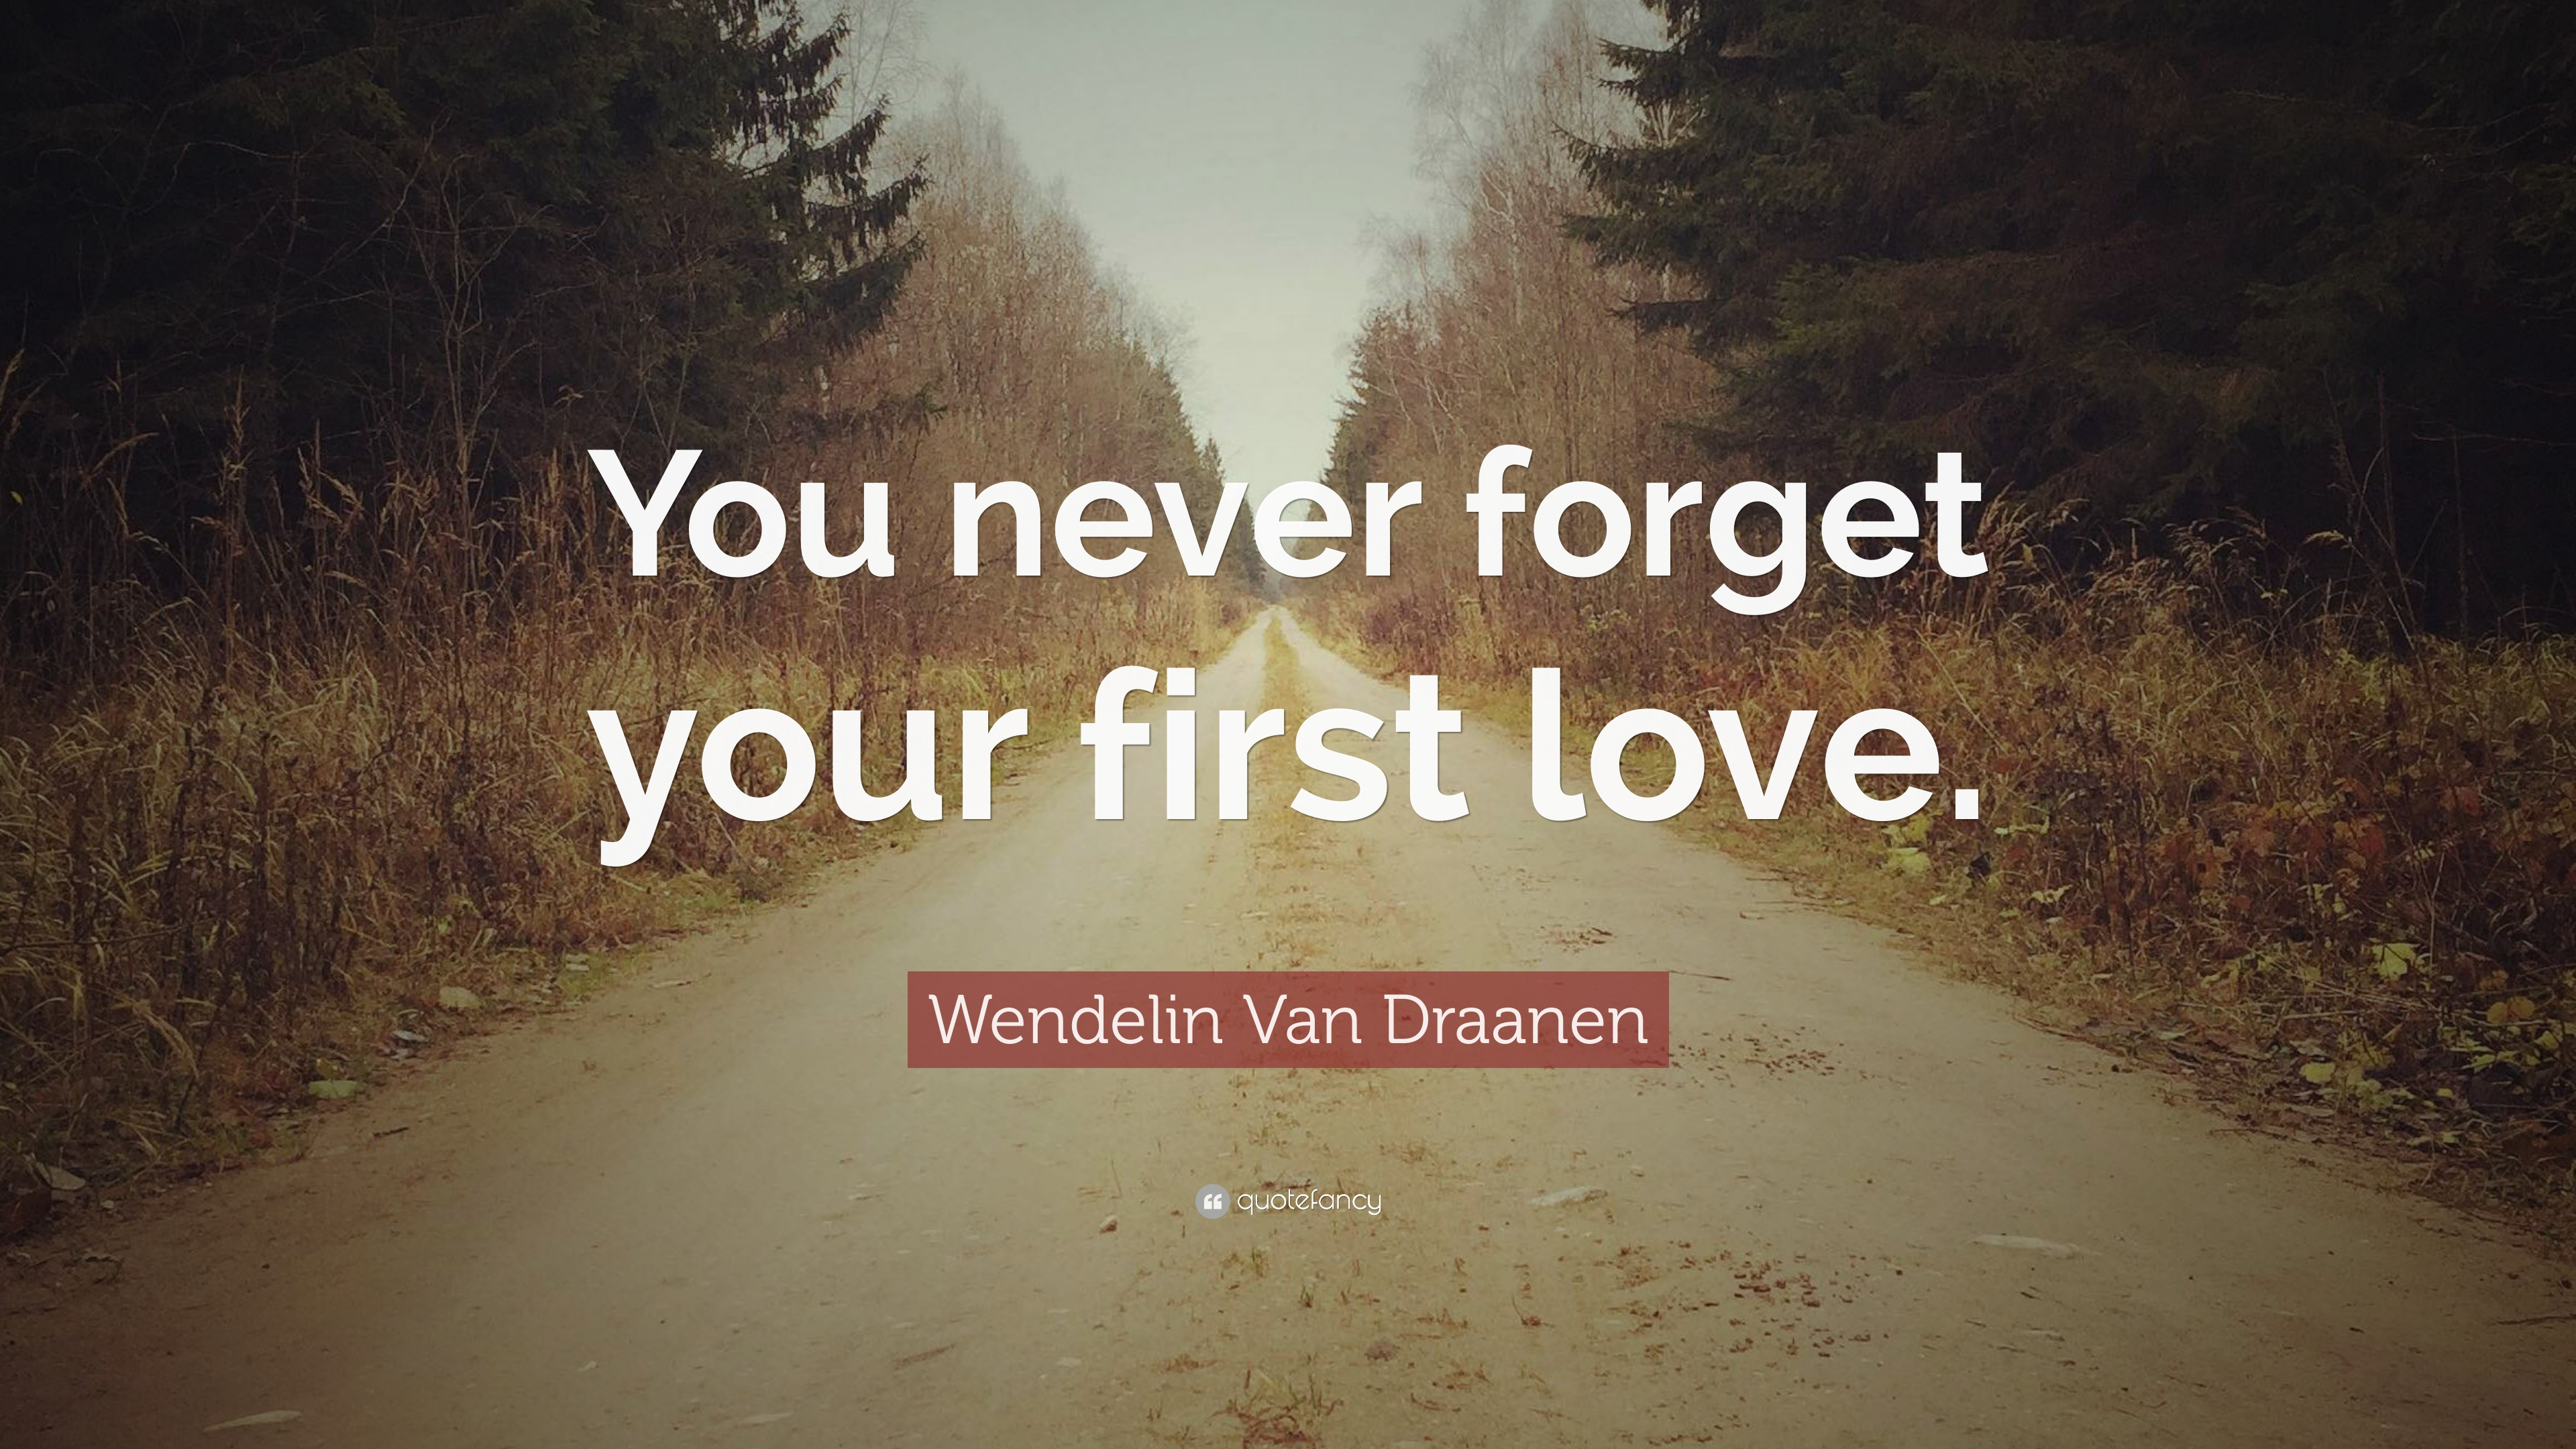 Wendelin Van Draanen Quote: U201cYou Never Forget Your First Love.u201d